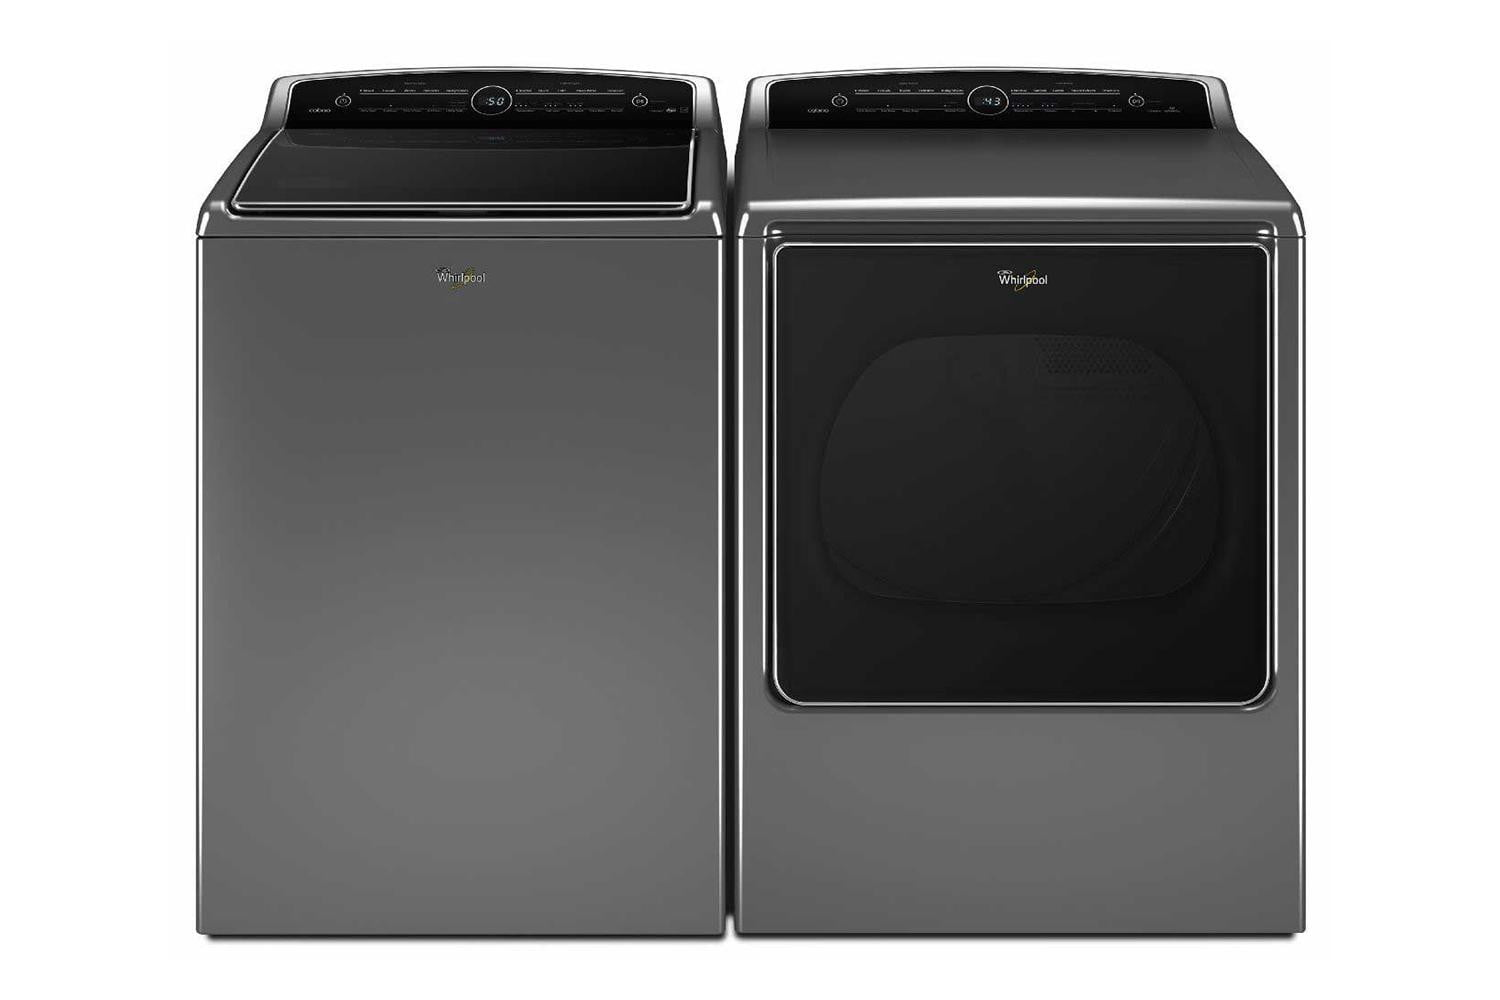 Digital trends 39 top tech of ces 2015 nominees digital trends - Whirlpool duet washer and dryer ...